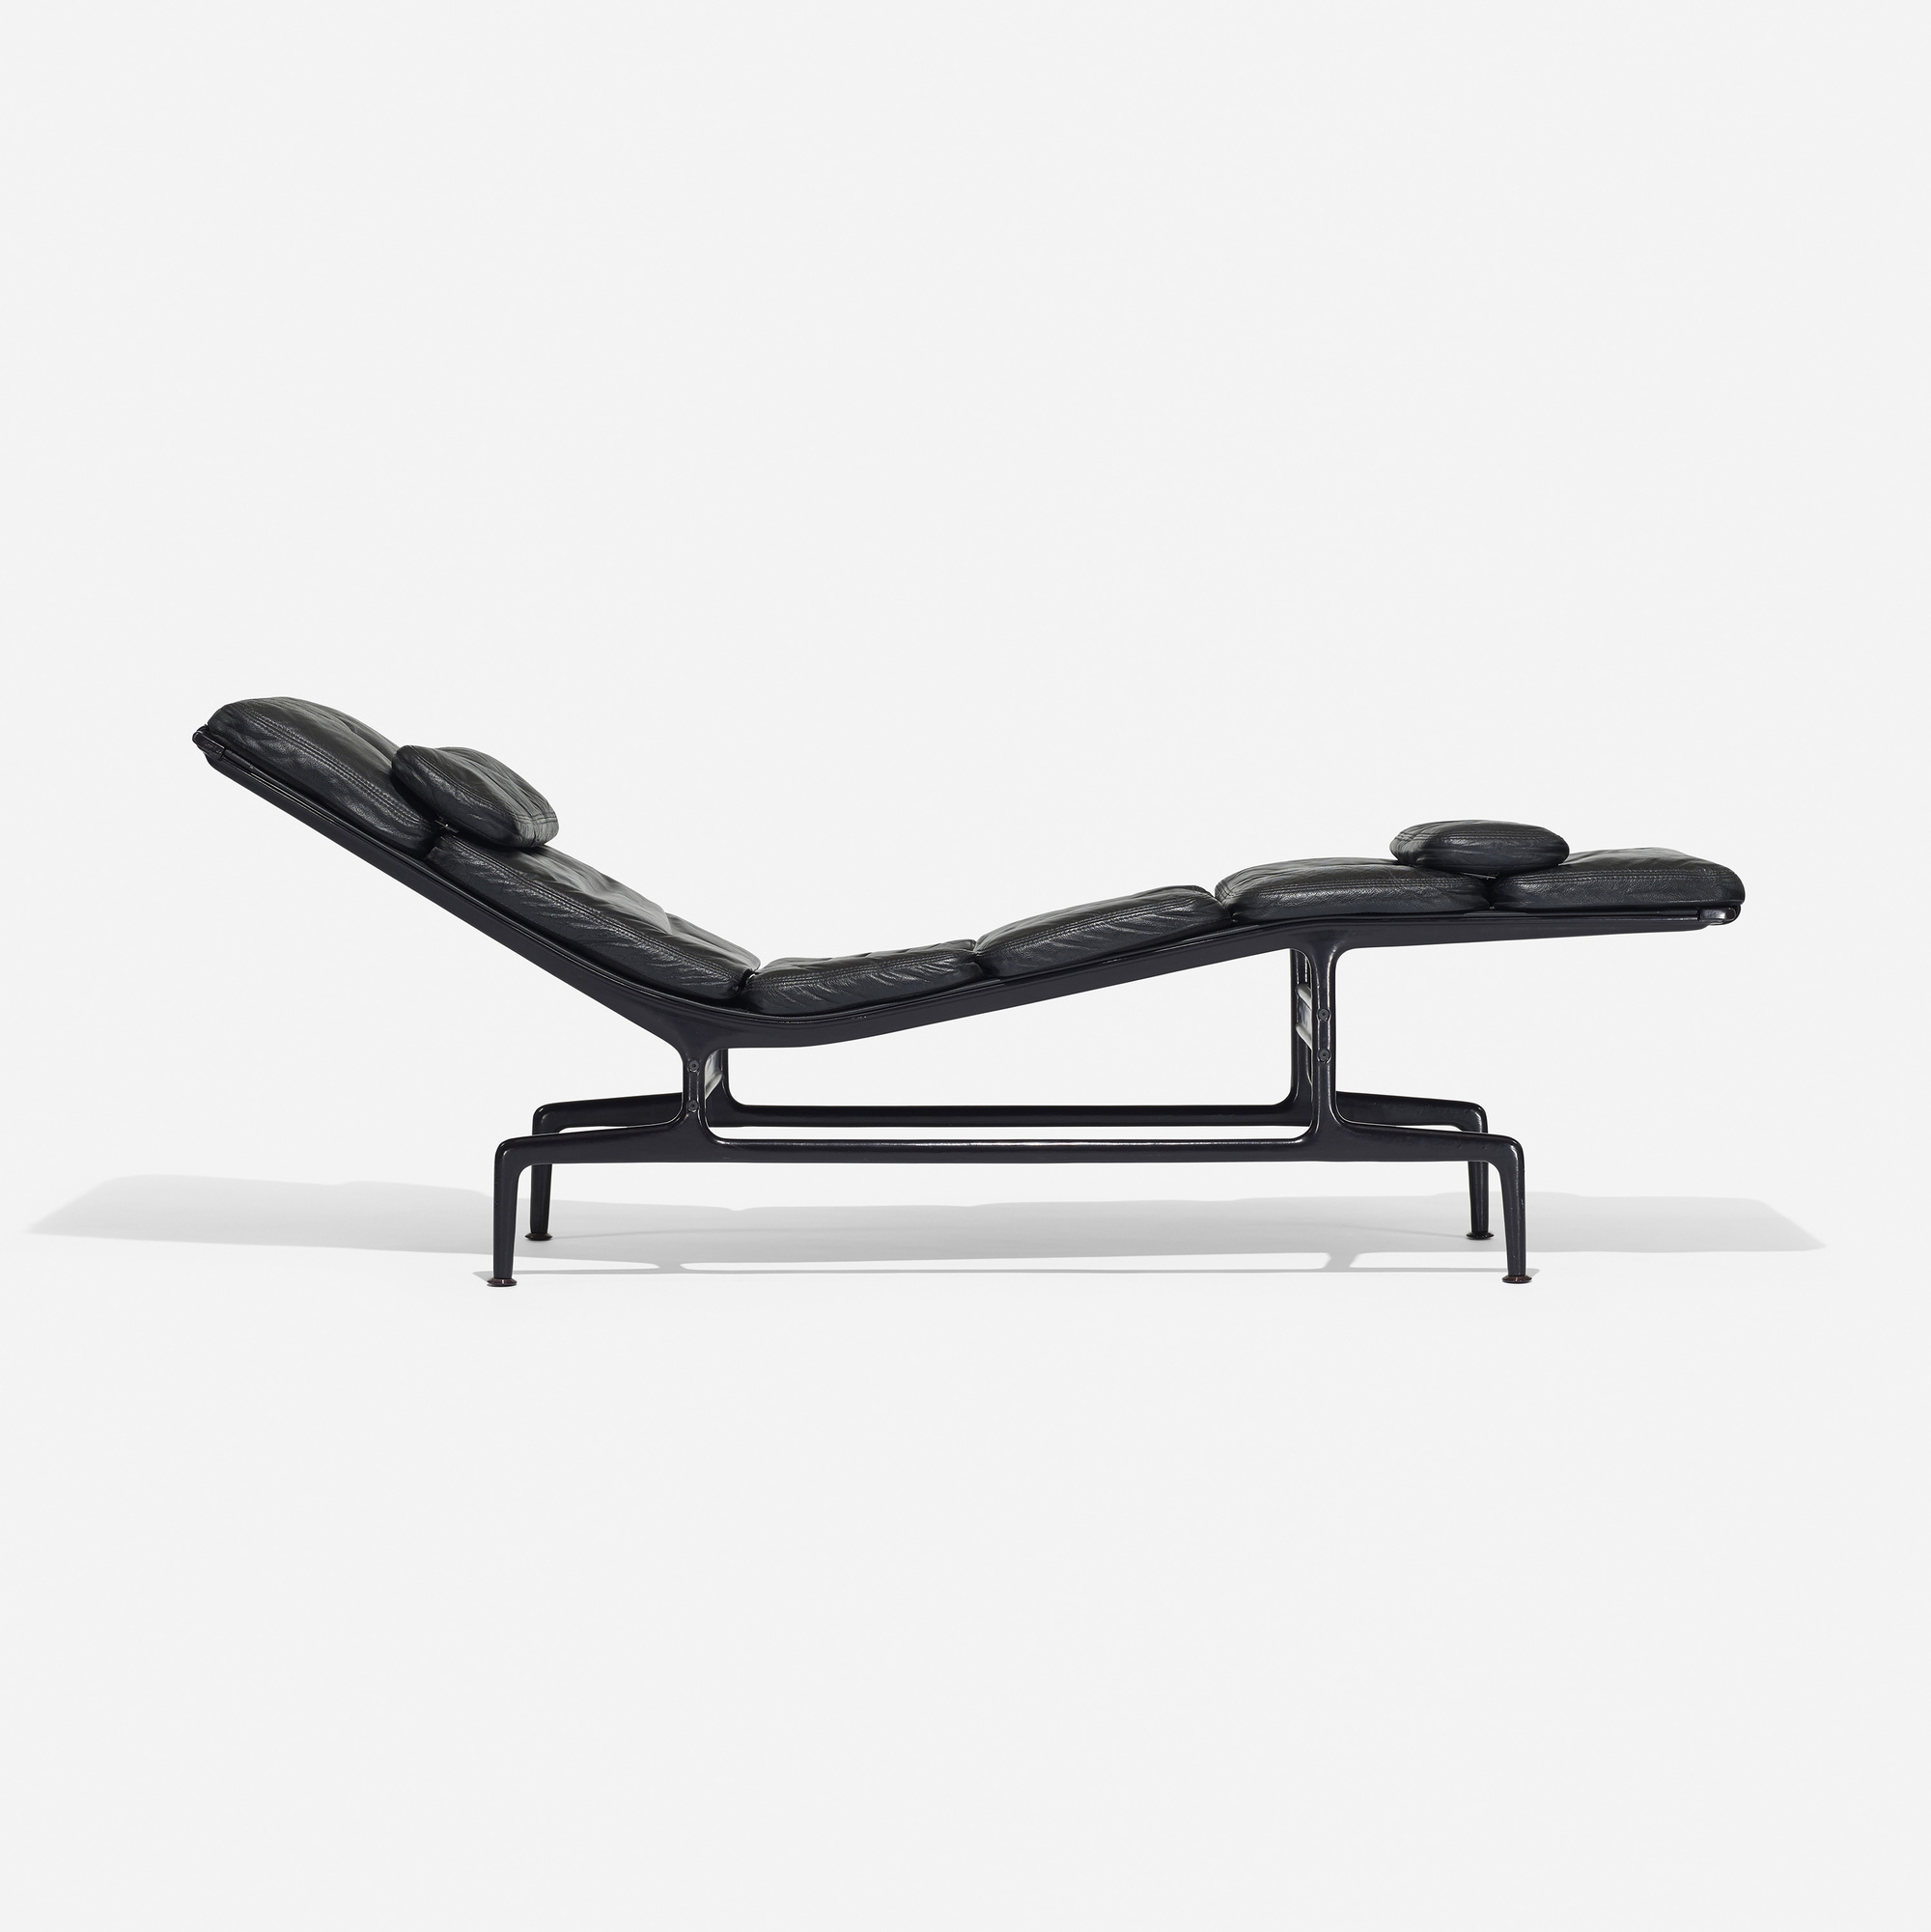 Chaise Design Eames 182 Charles And Ray Eames Billy Wilder Chaise American Design